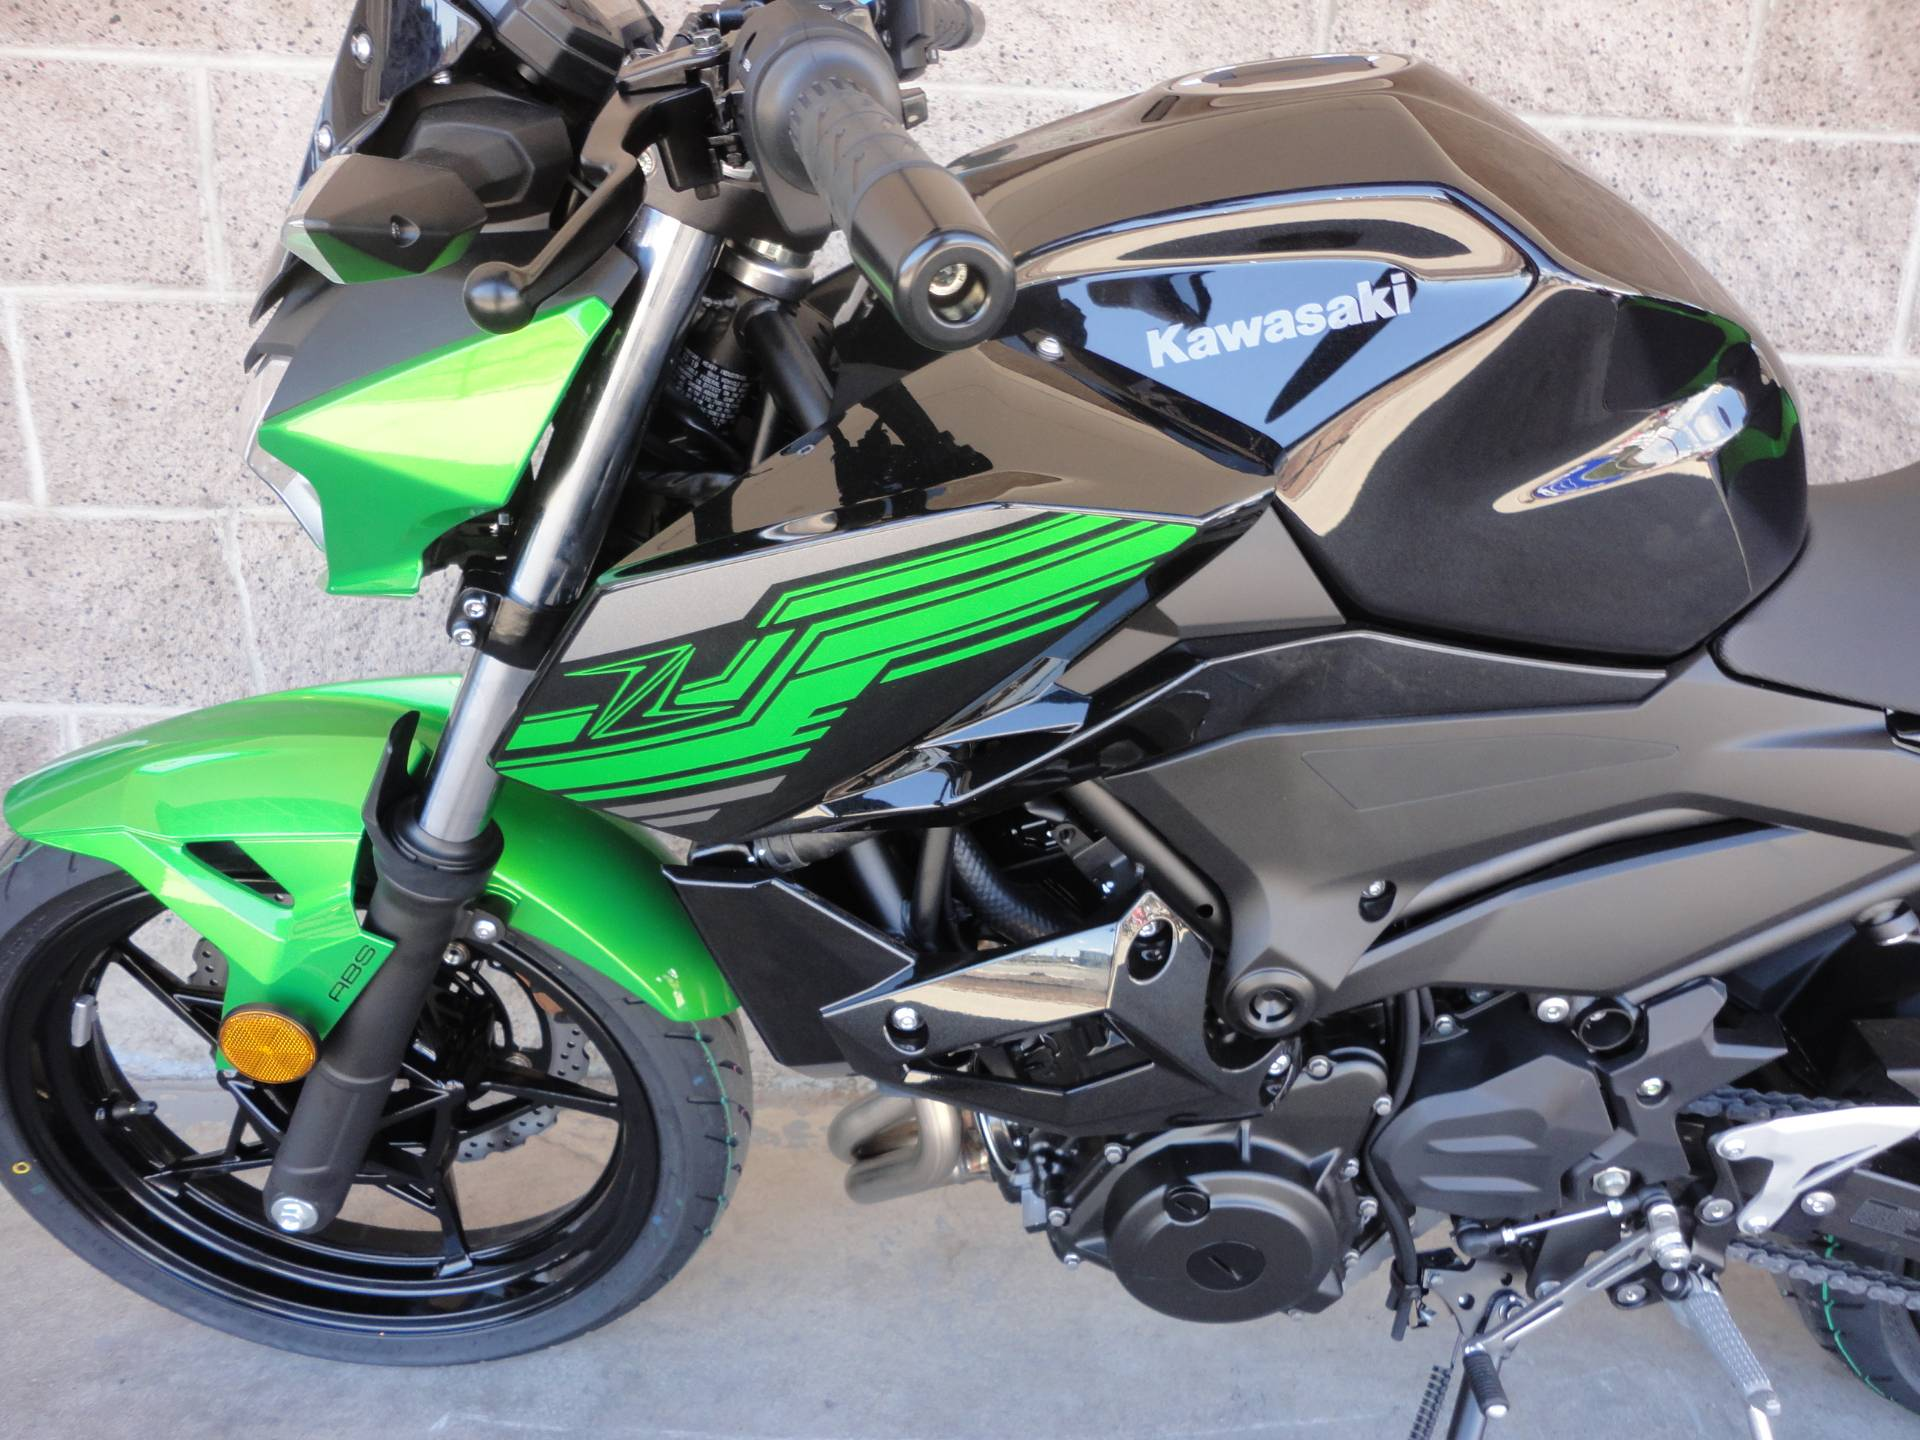 2019 Kawasaki Z400 ABS in Denver, Colorado - Photo 3